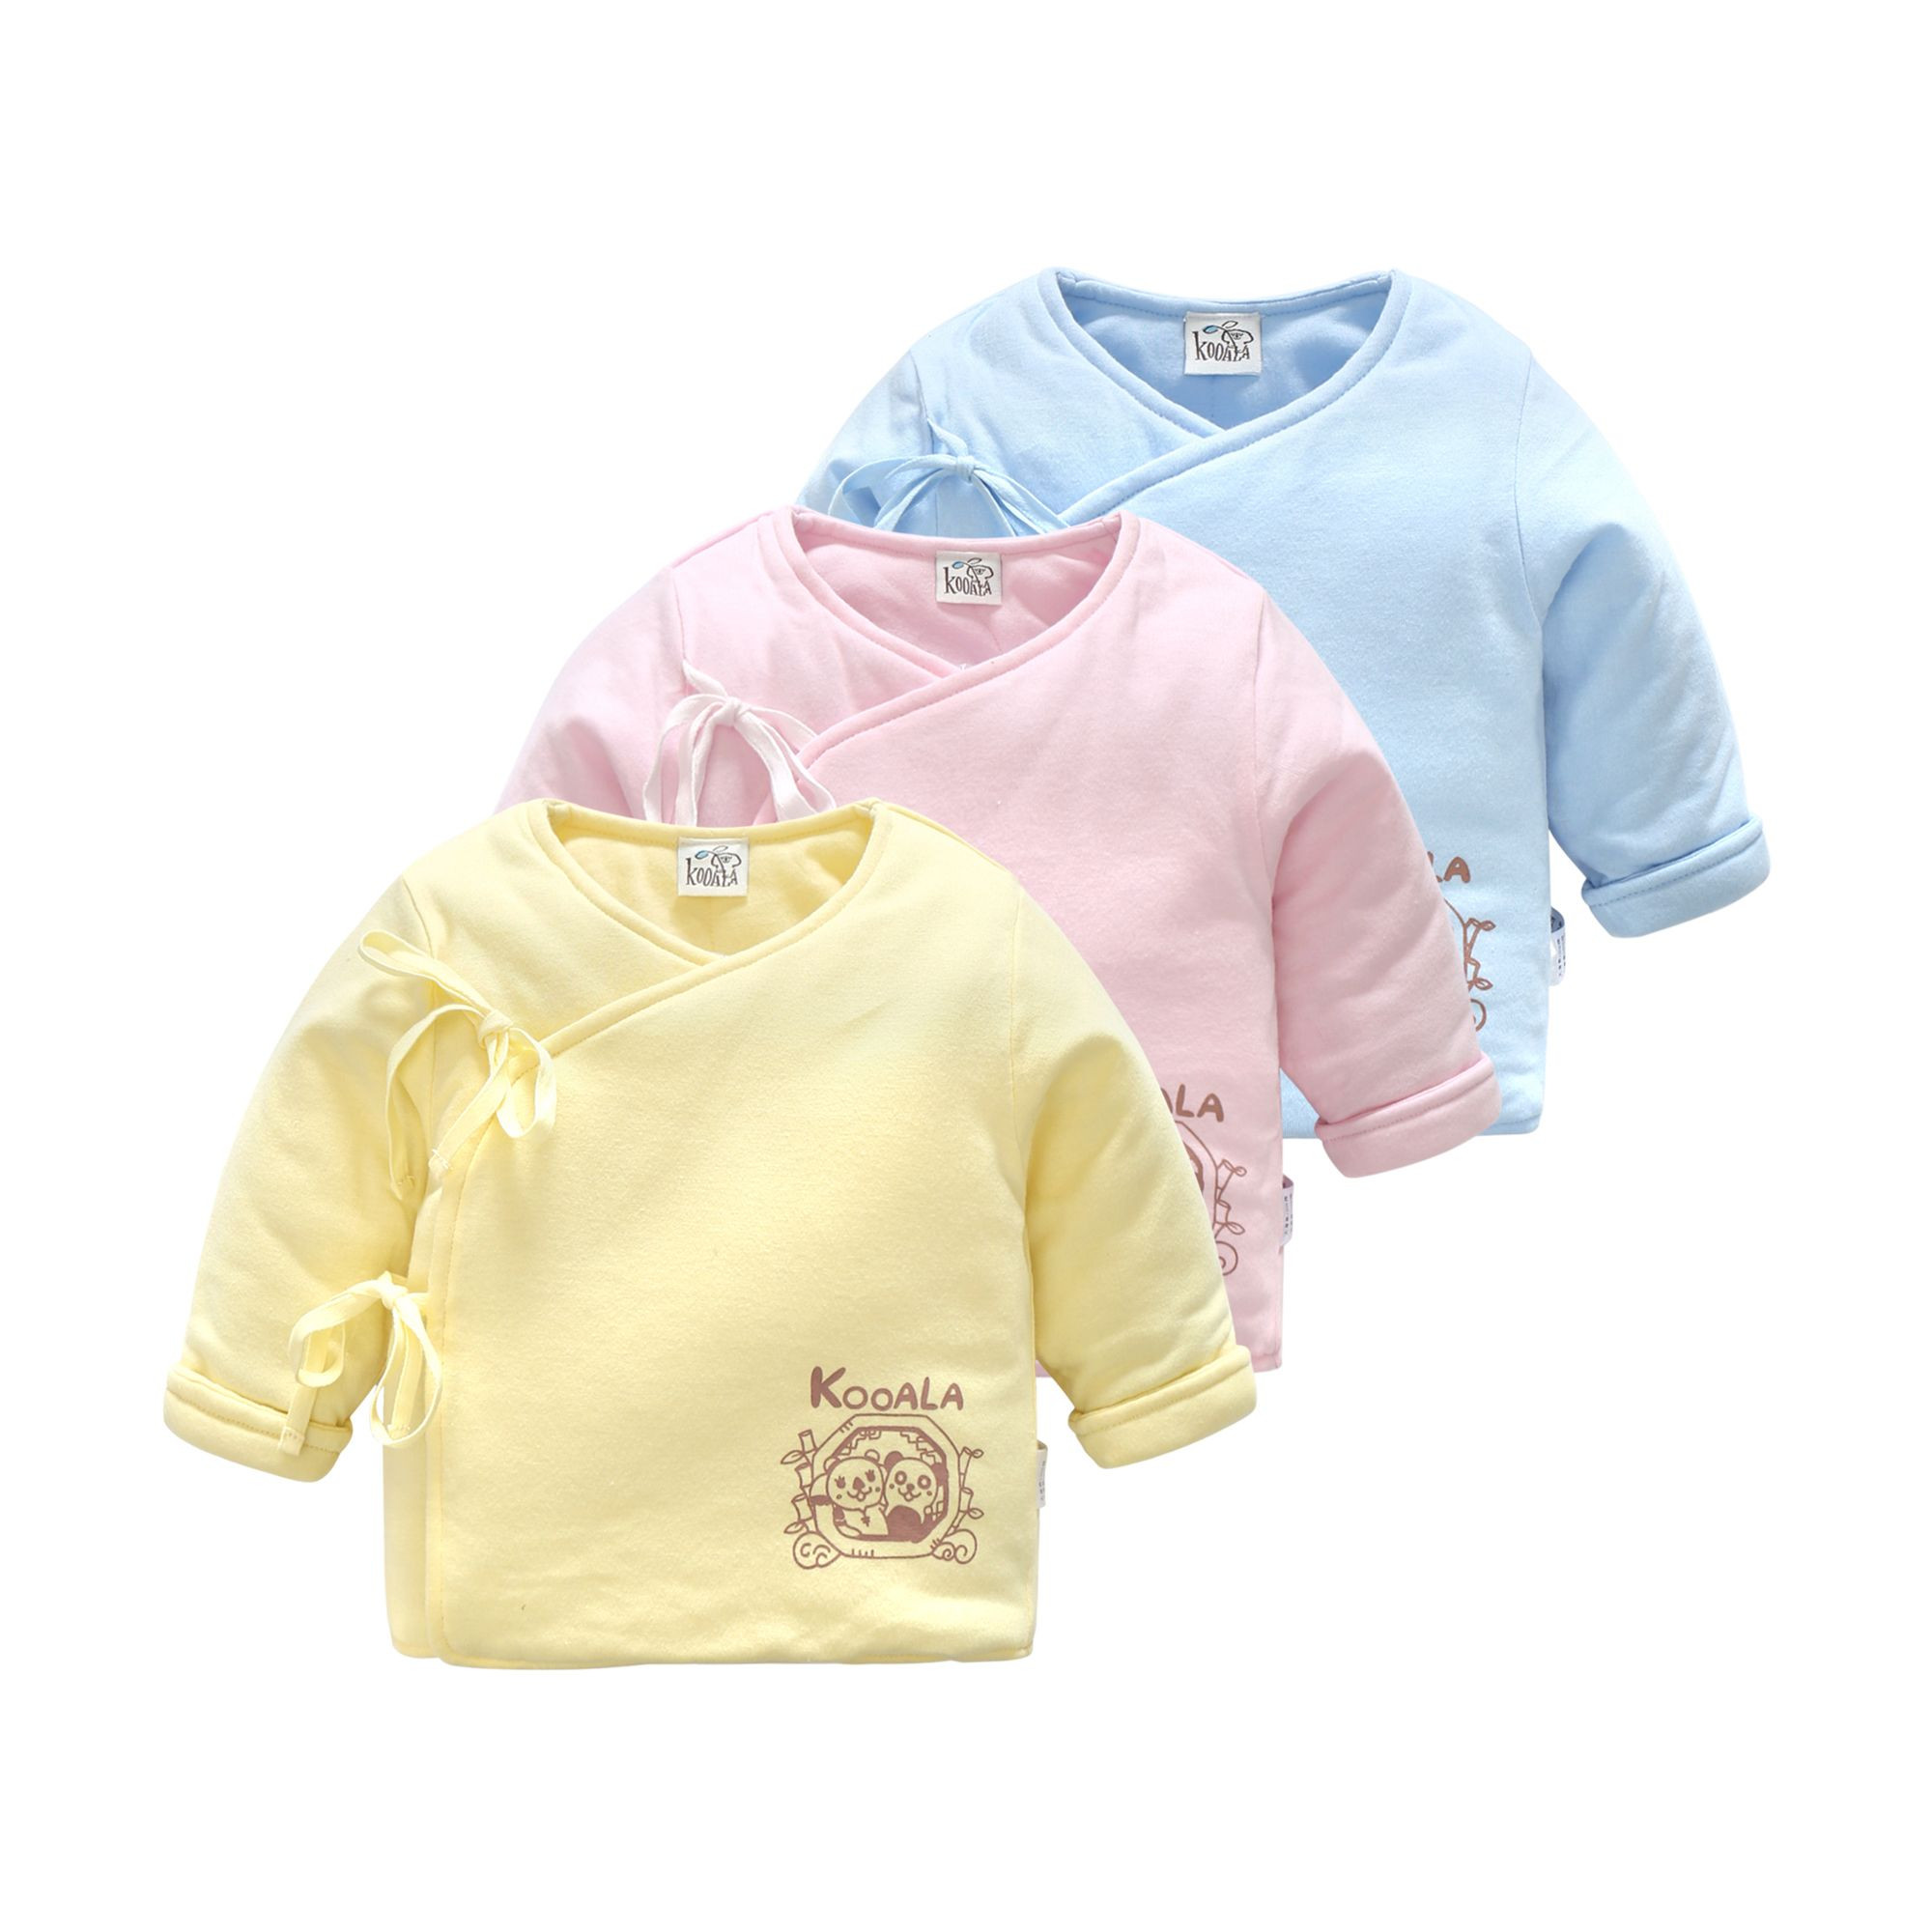 Baby Top Clothing